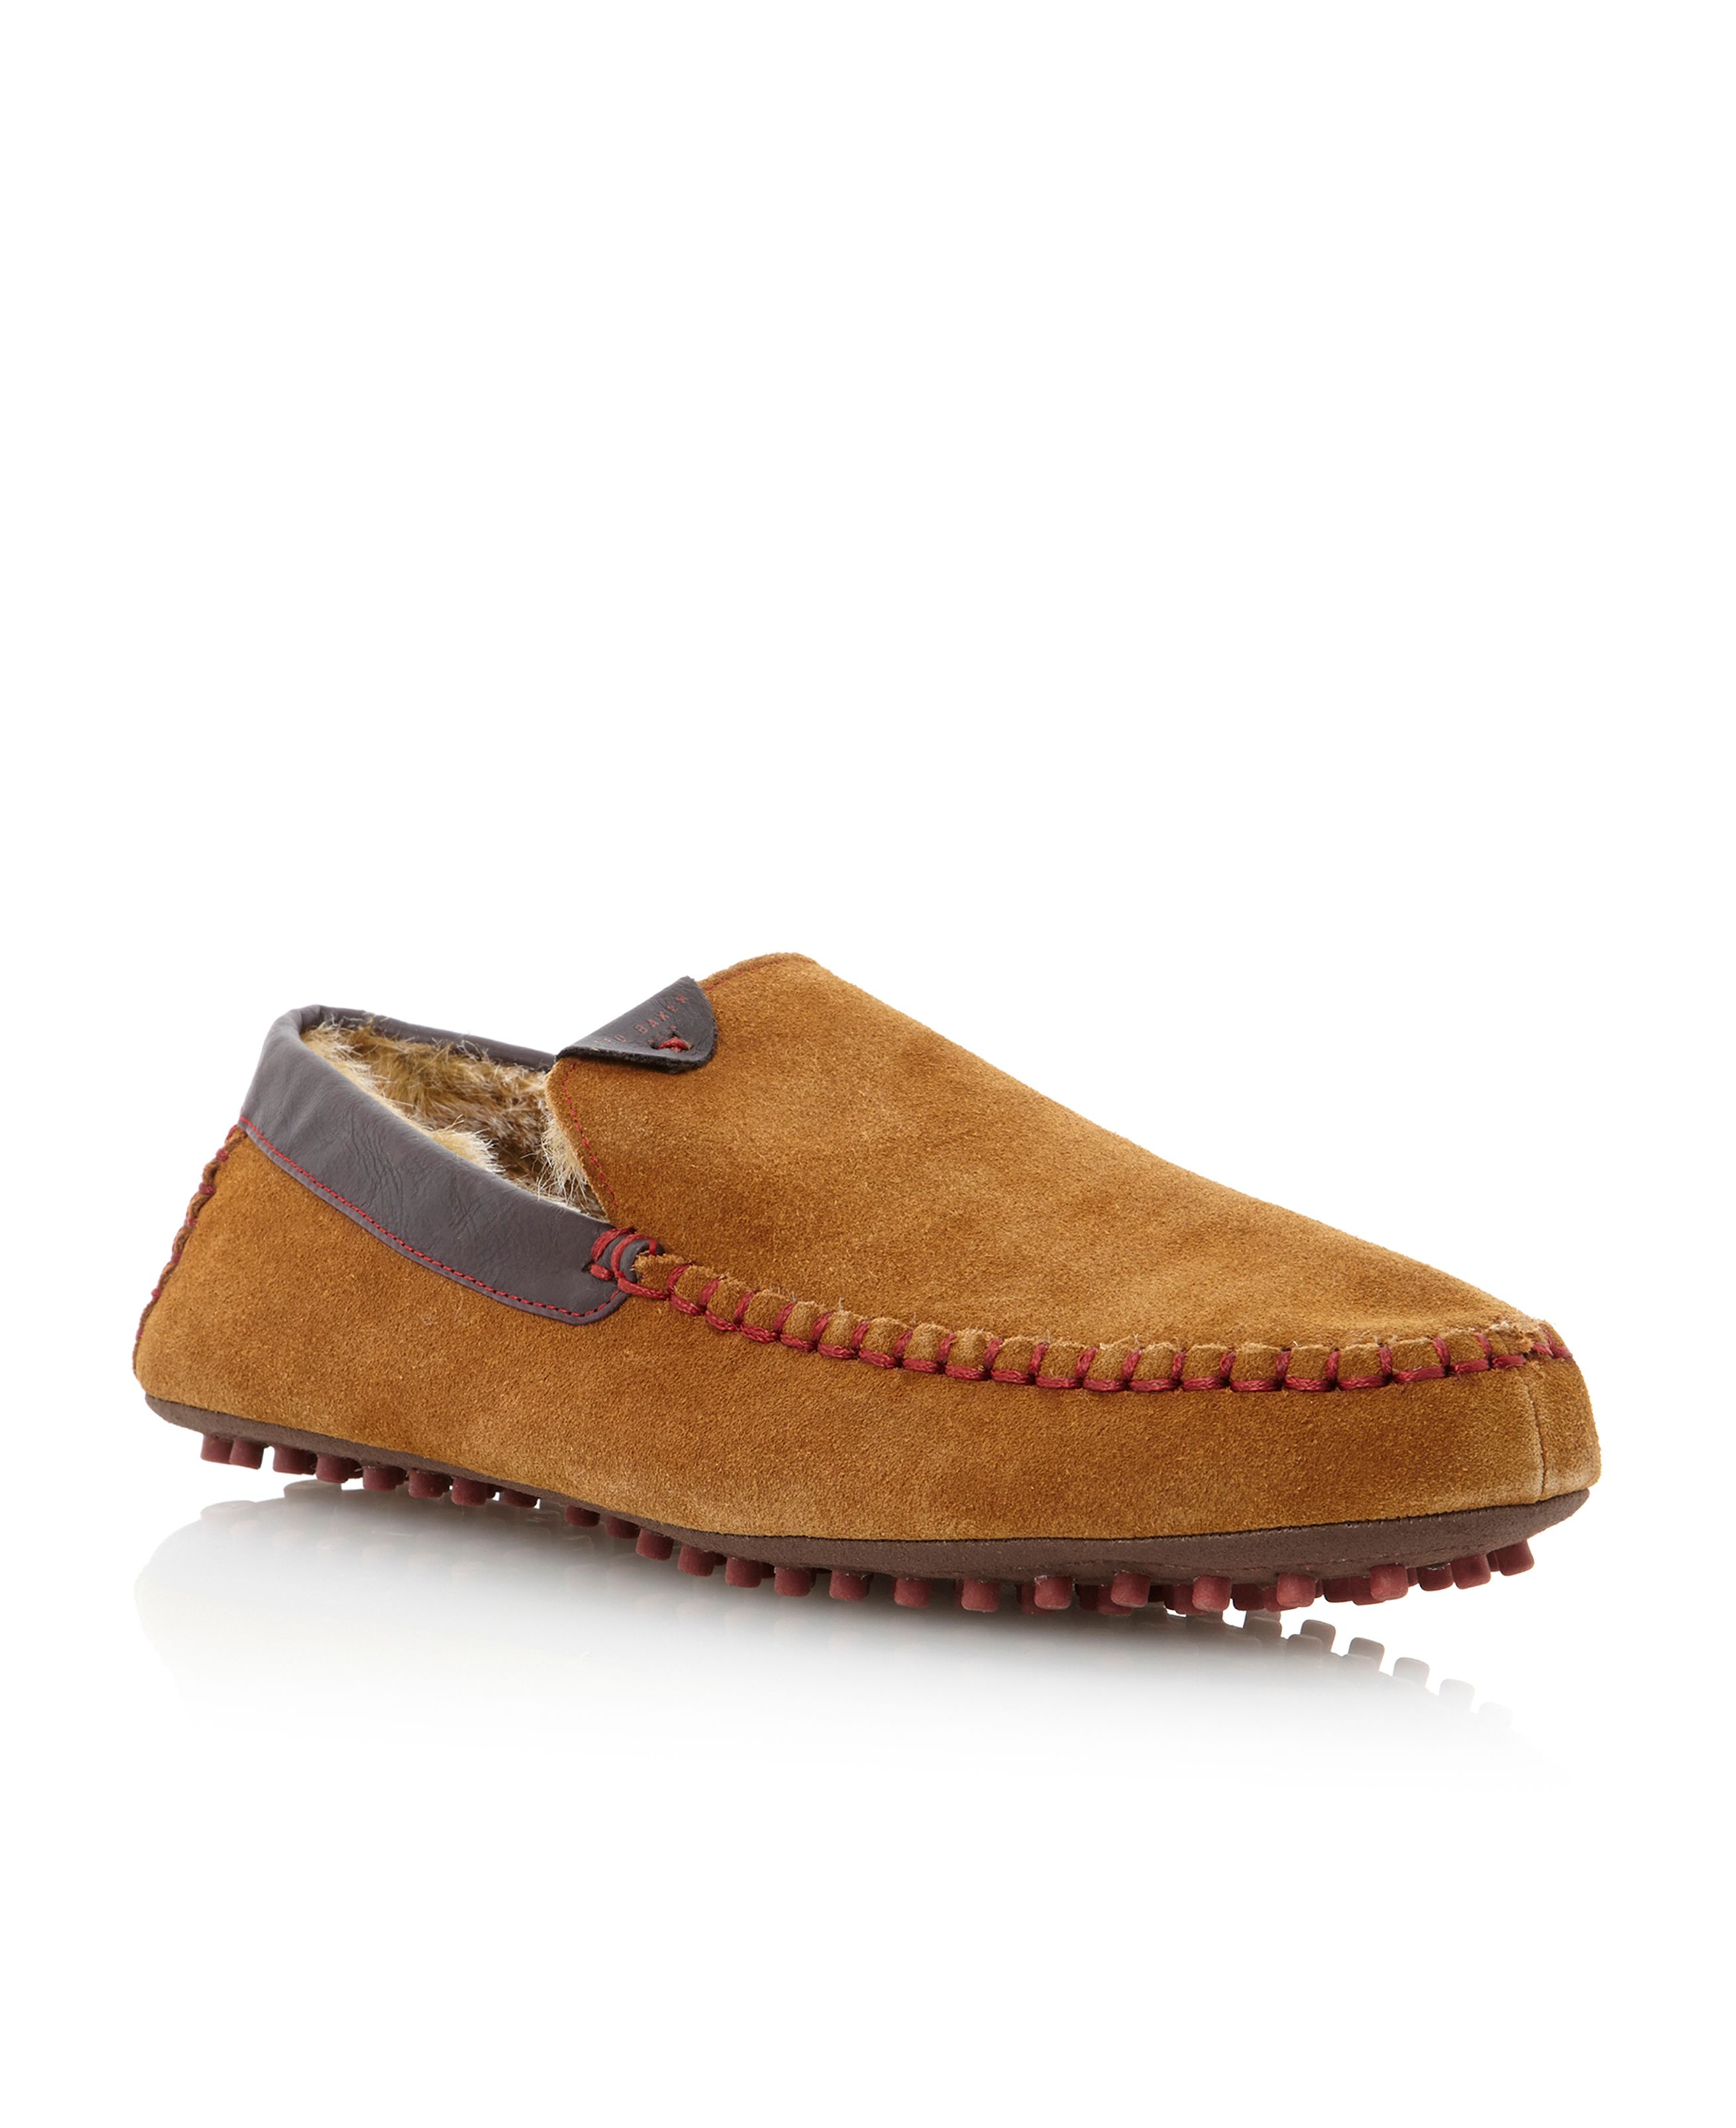 Carota warm lined mocc slipper